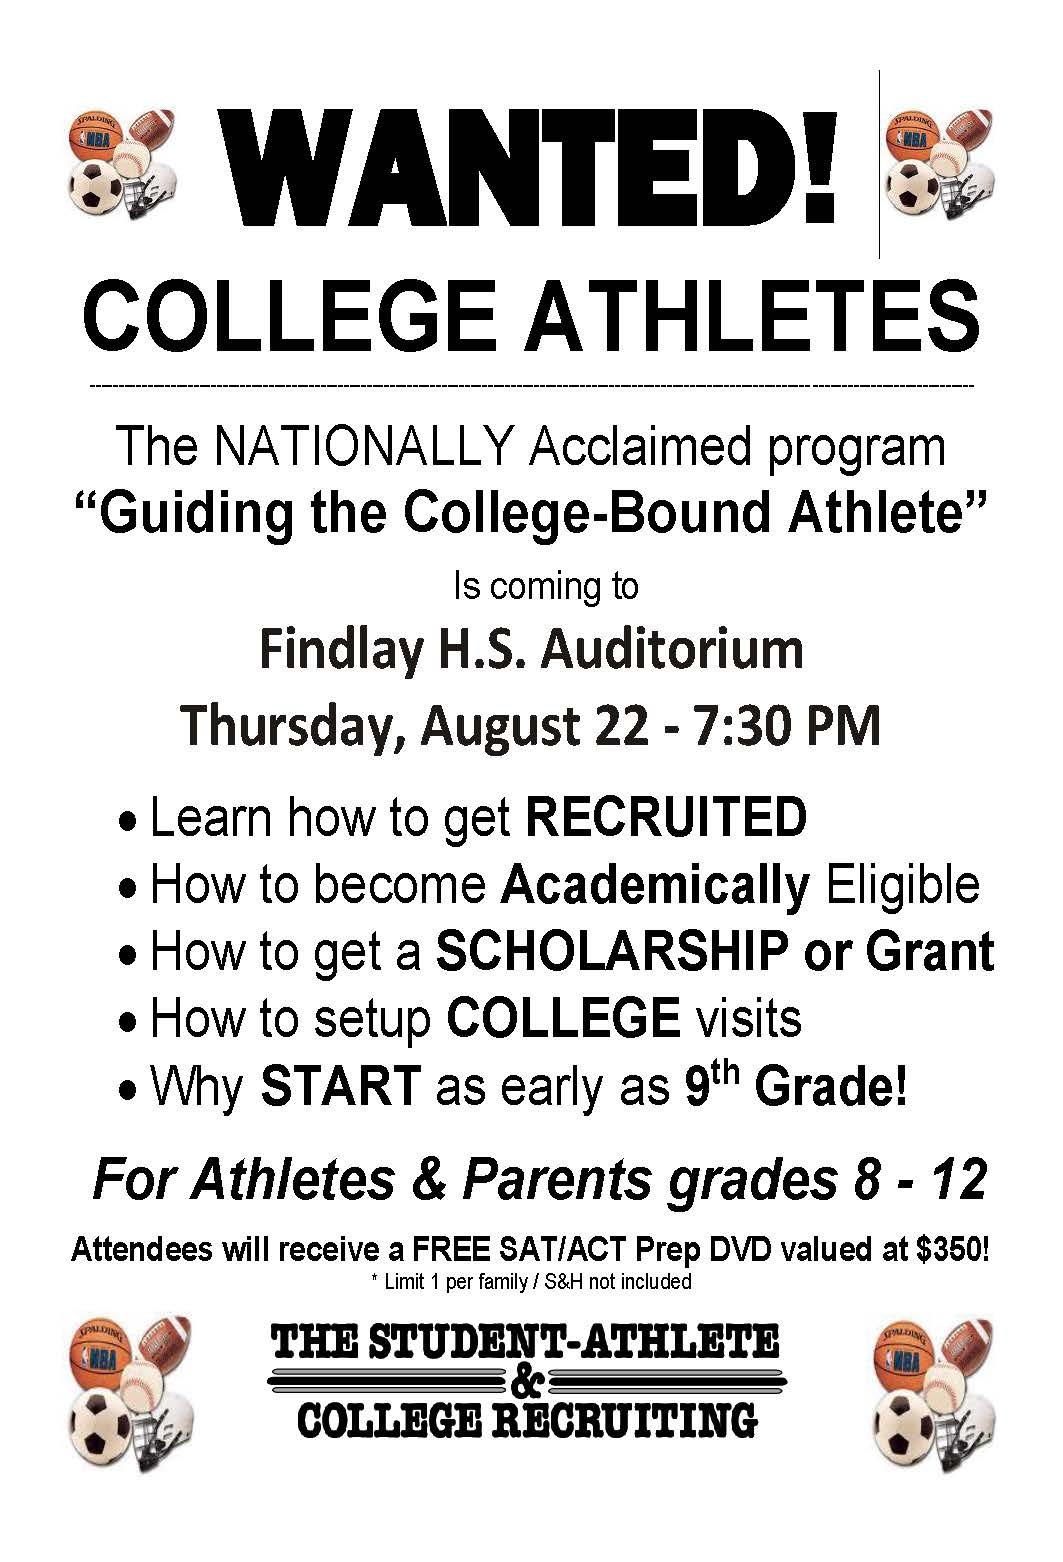 Free College Recruiting Seminar to be held at FHS on Aug. 22